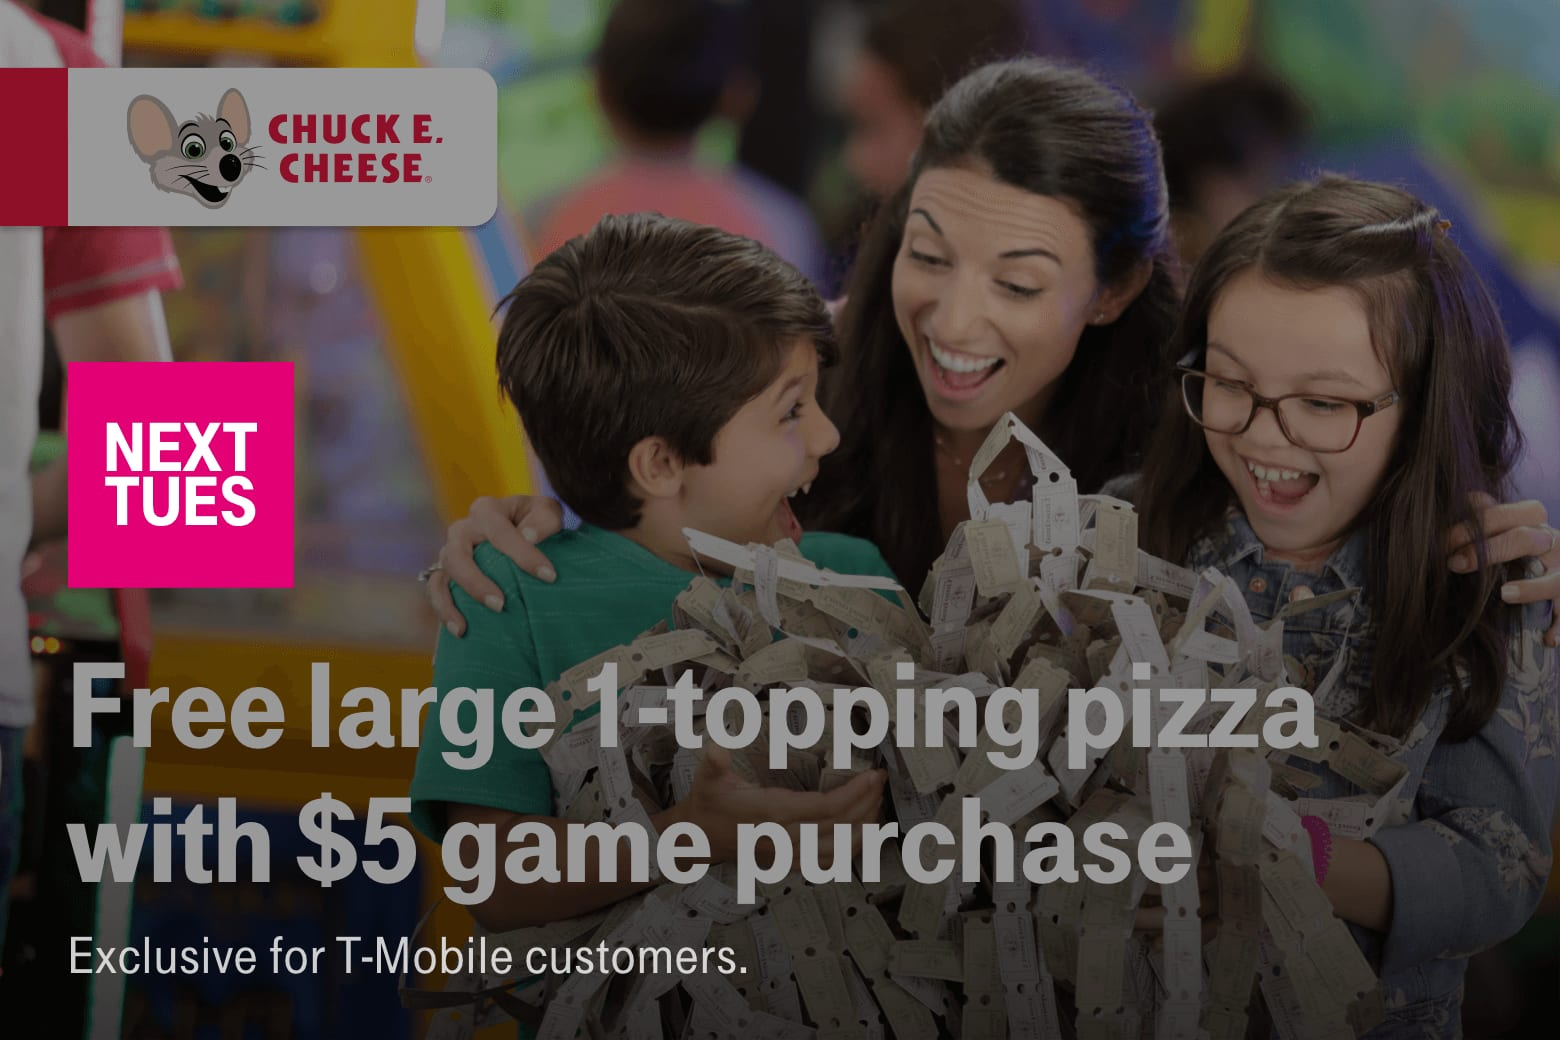 T-Mobile Customers 12/10: $5 off movie ticket, Free T-Mobile Touch Screen Gloves, Free Chuck e cheese large 1-topping pizza with $5 game purchase, $3 starbucks